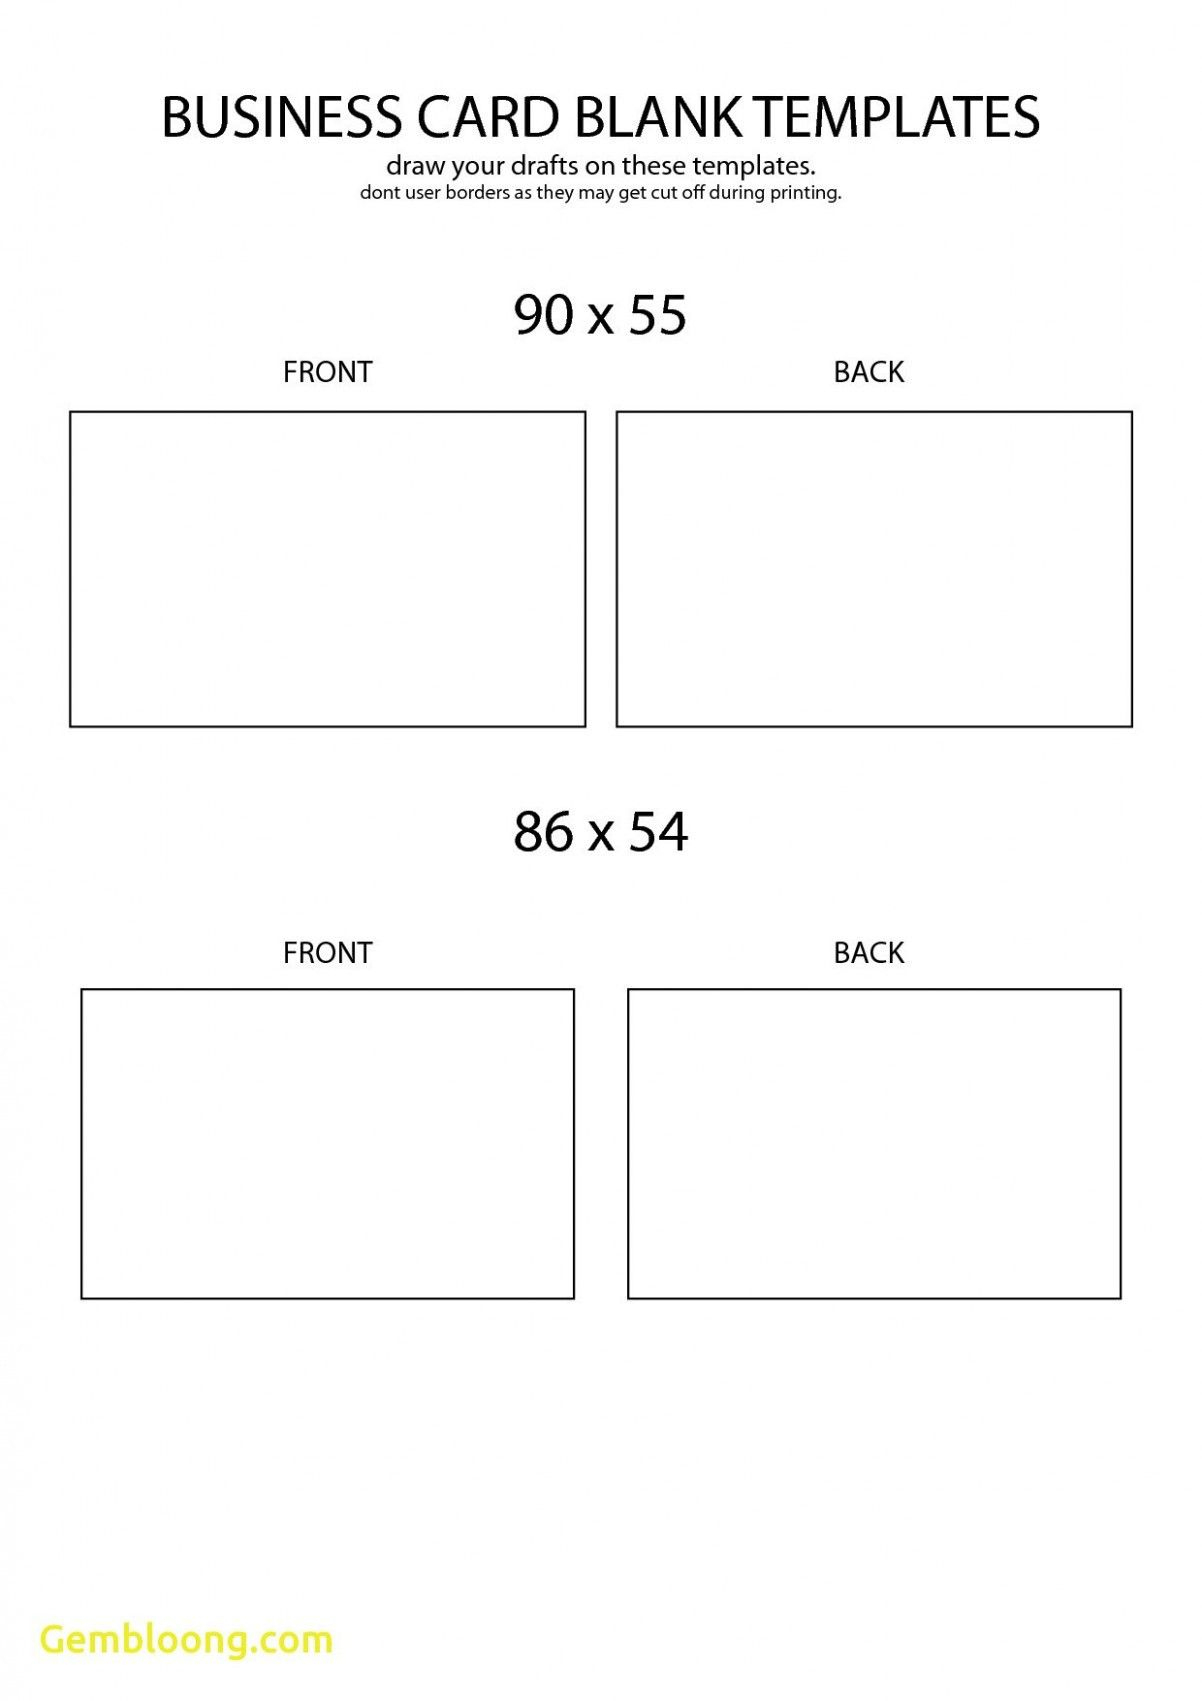 Free Blank Business Card Template Front And Back Design | Business - Free Printable Blank Business Cards